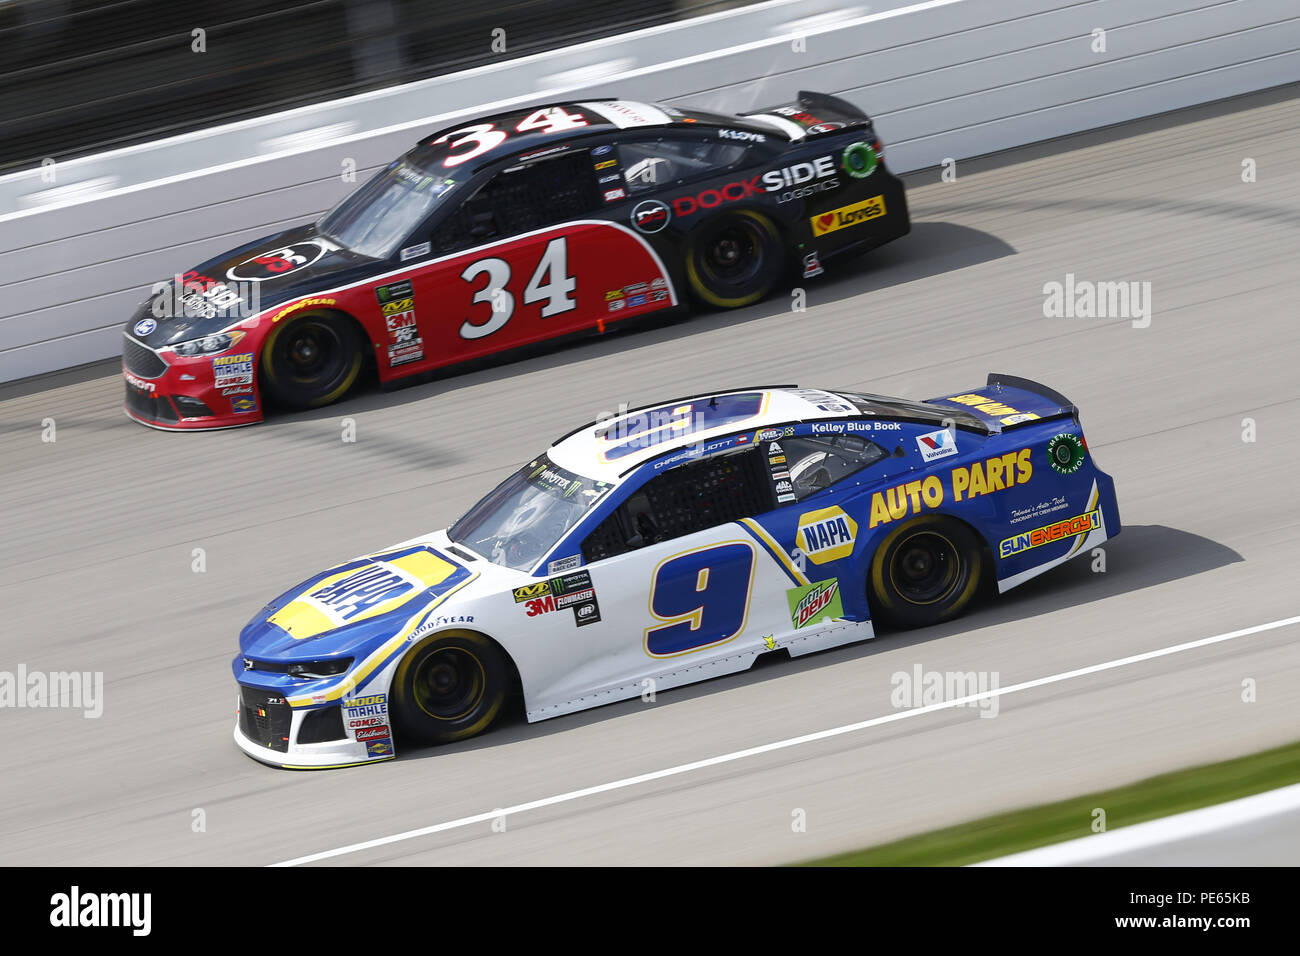 Brooklyn, Michigan, USA. 12th Aug, 2018. Chase Elliott (9) and Michael McDowell (34) battle for position during the Consumers Energy 400 at Michigan International Speedway in Brooklyn, Michigan. Credit: Chris Owens Asp Inc/ASP/ZUMA Wire/Alamy Live News - Stock Image